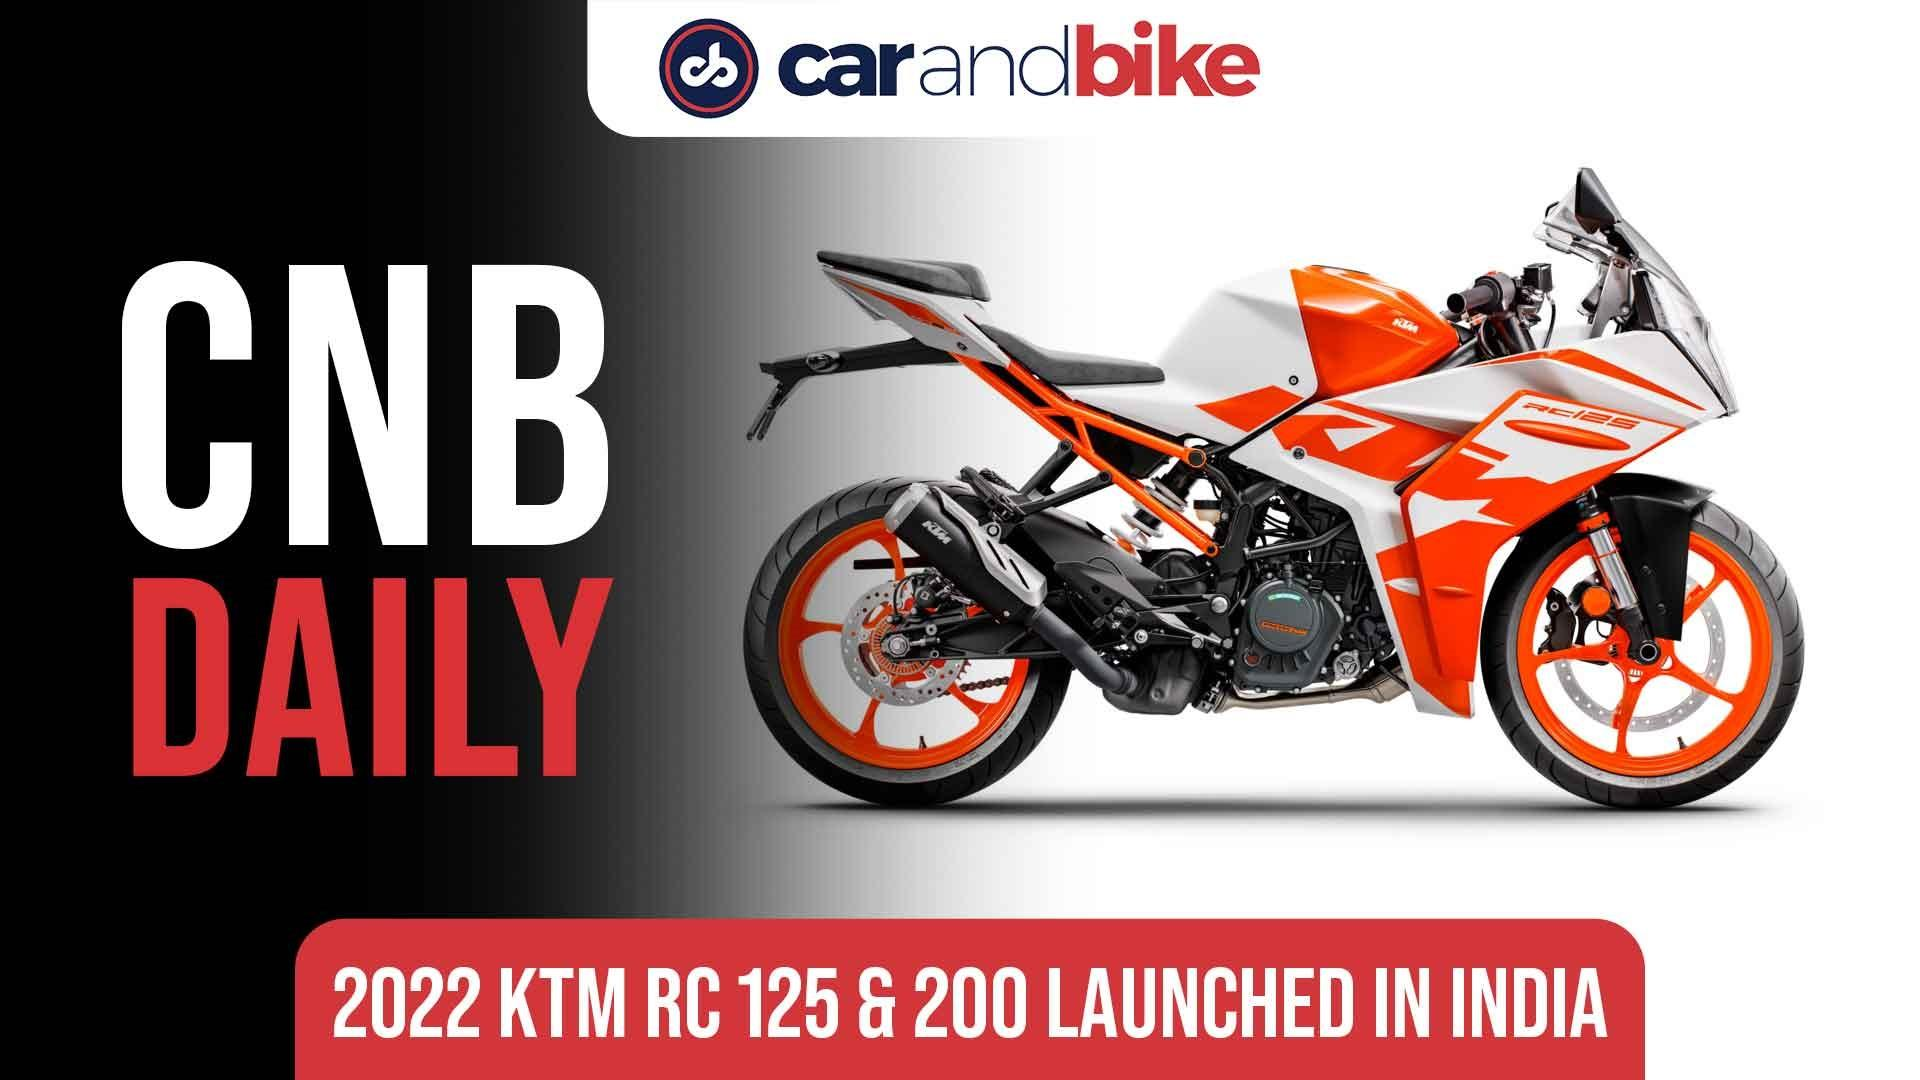 2022 KTM RC 125 & 200 Launched In India